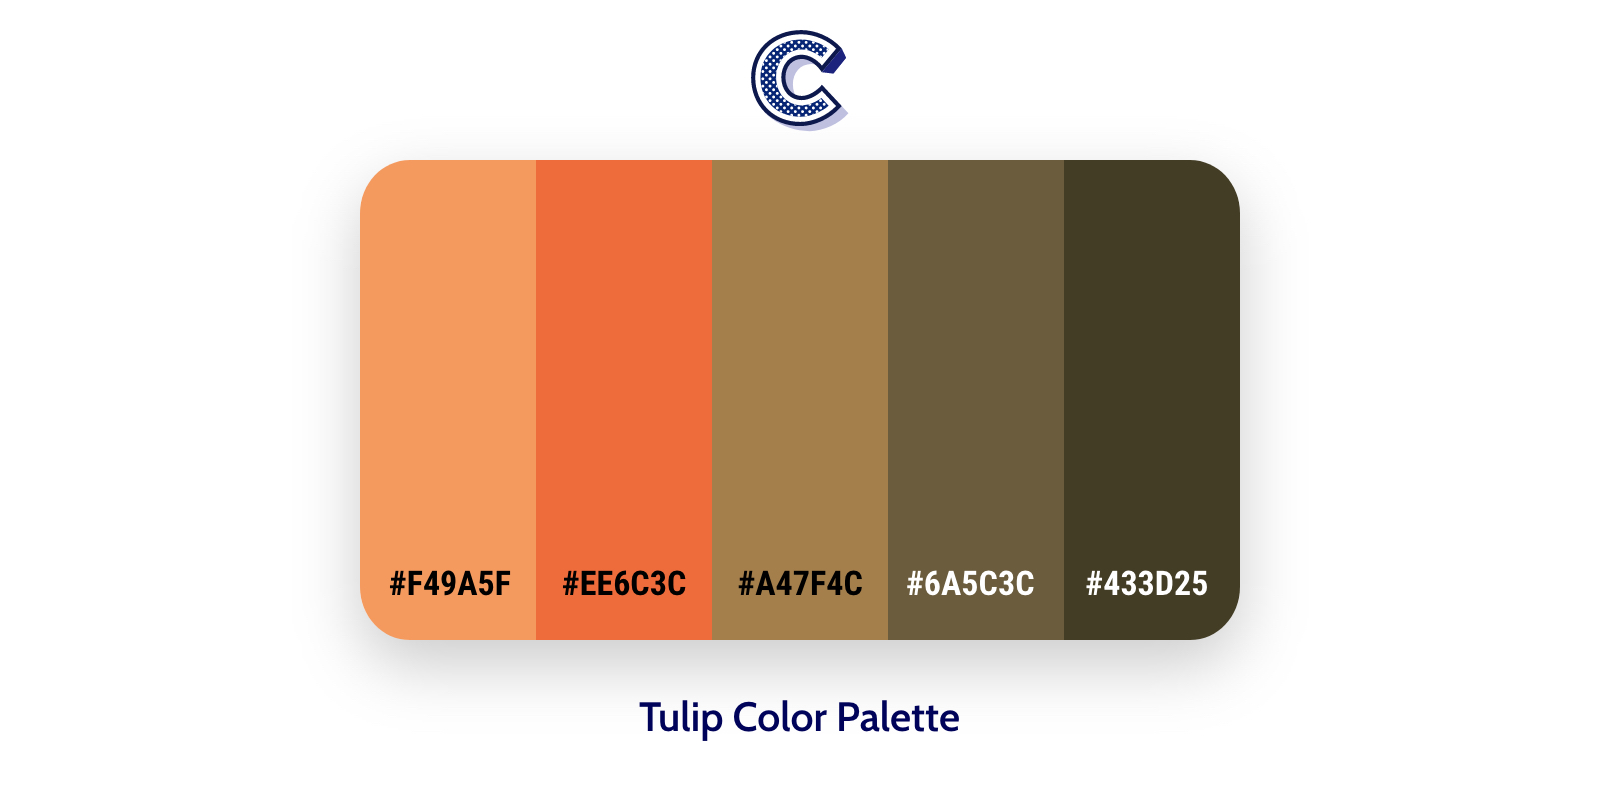 the featured image of tulip color palette